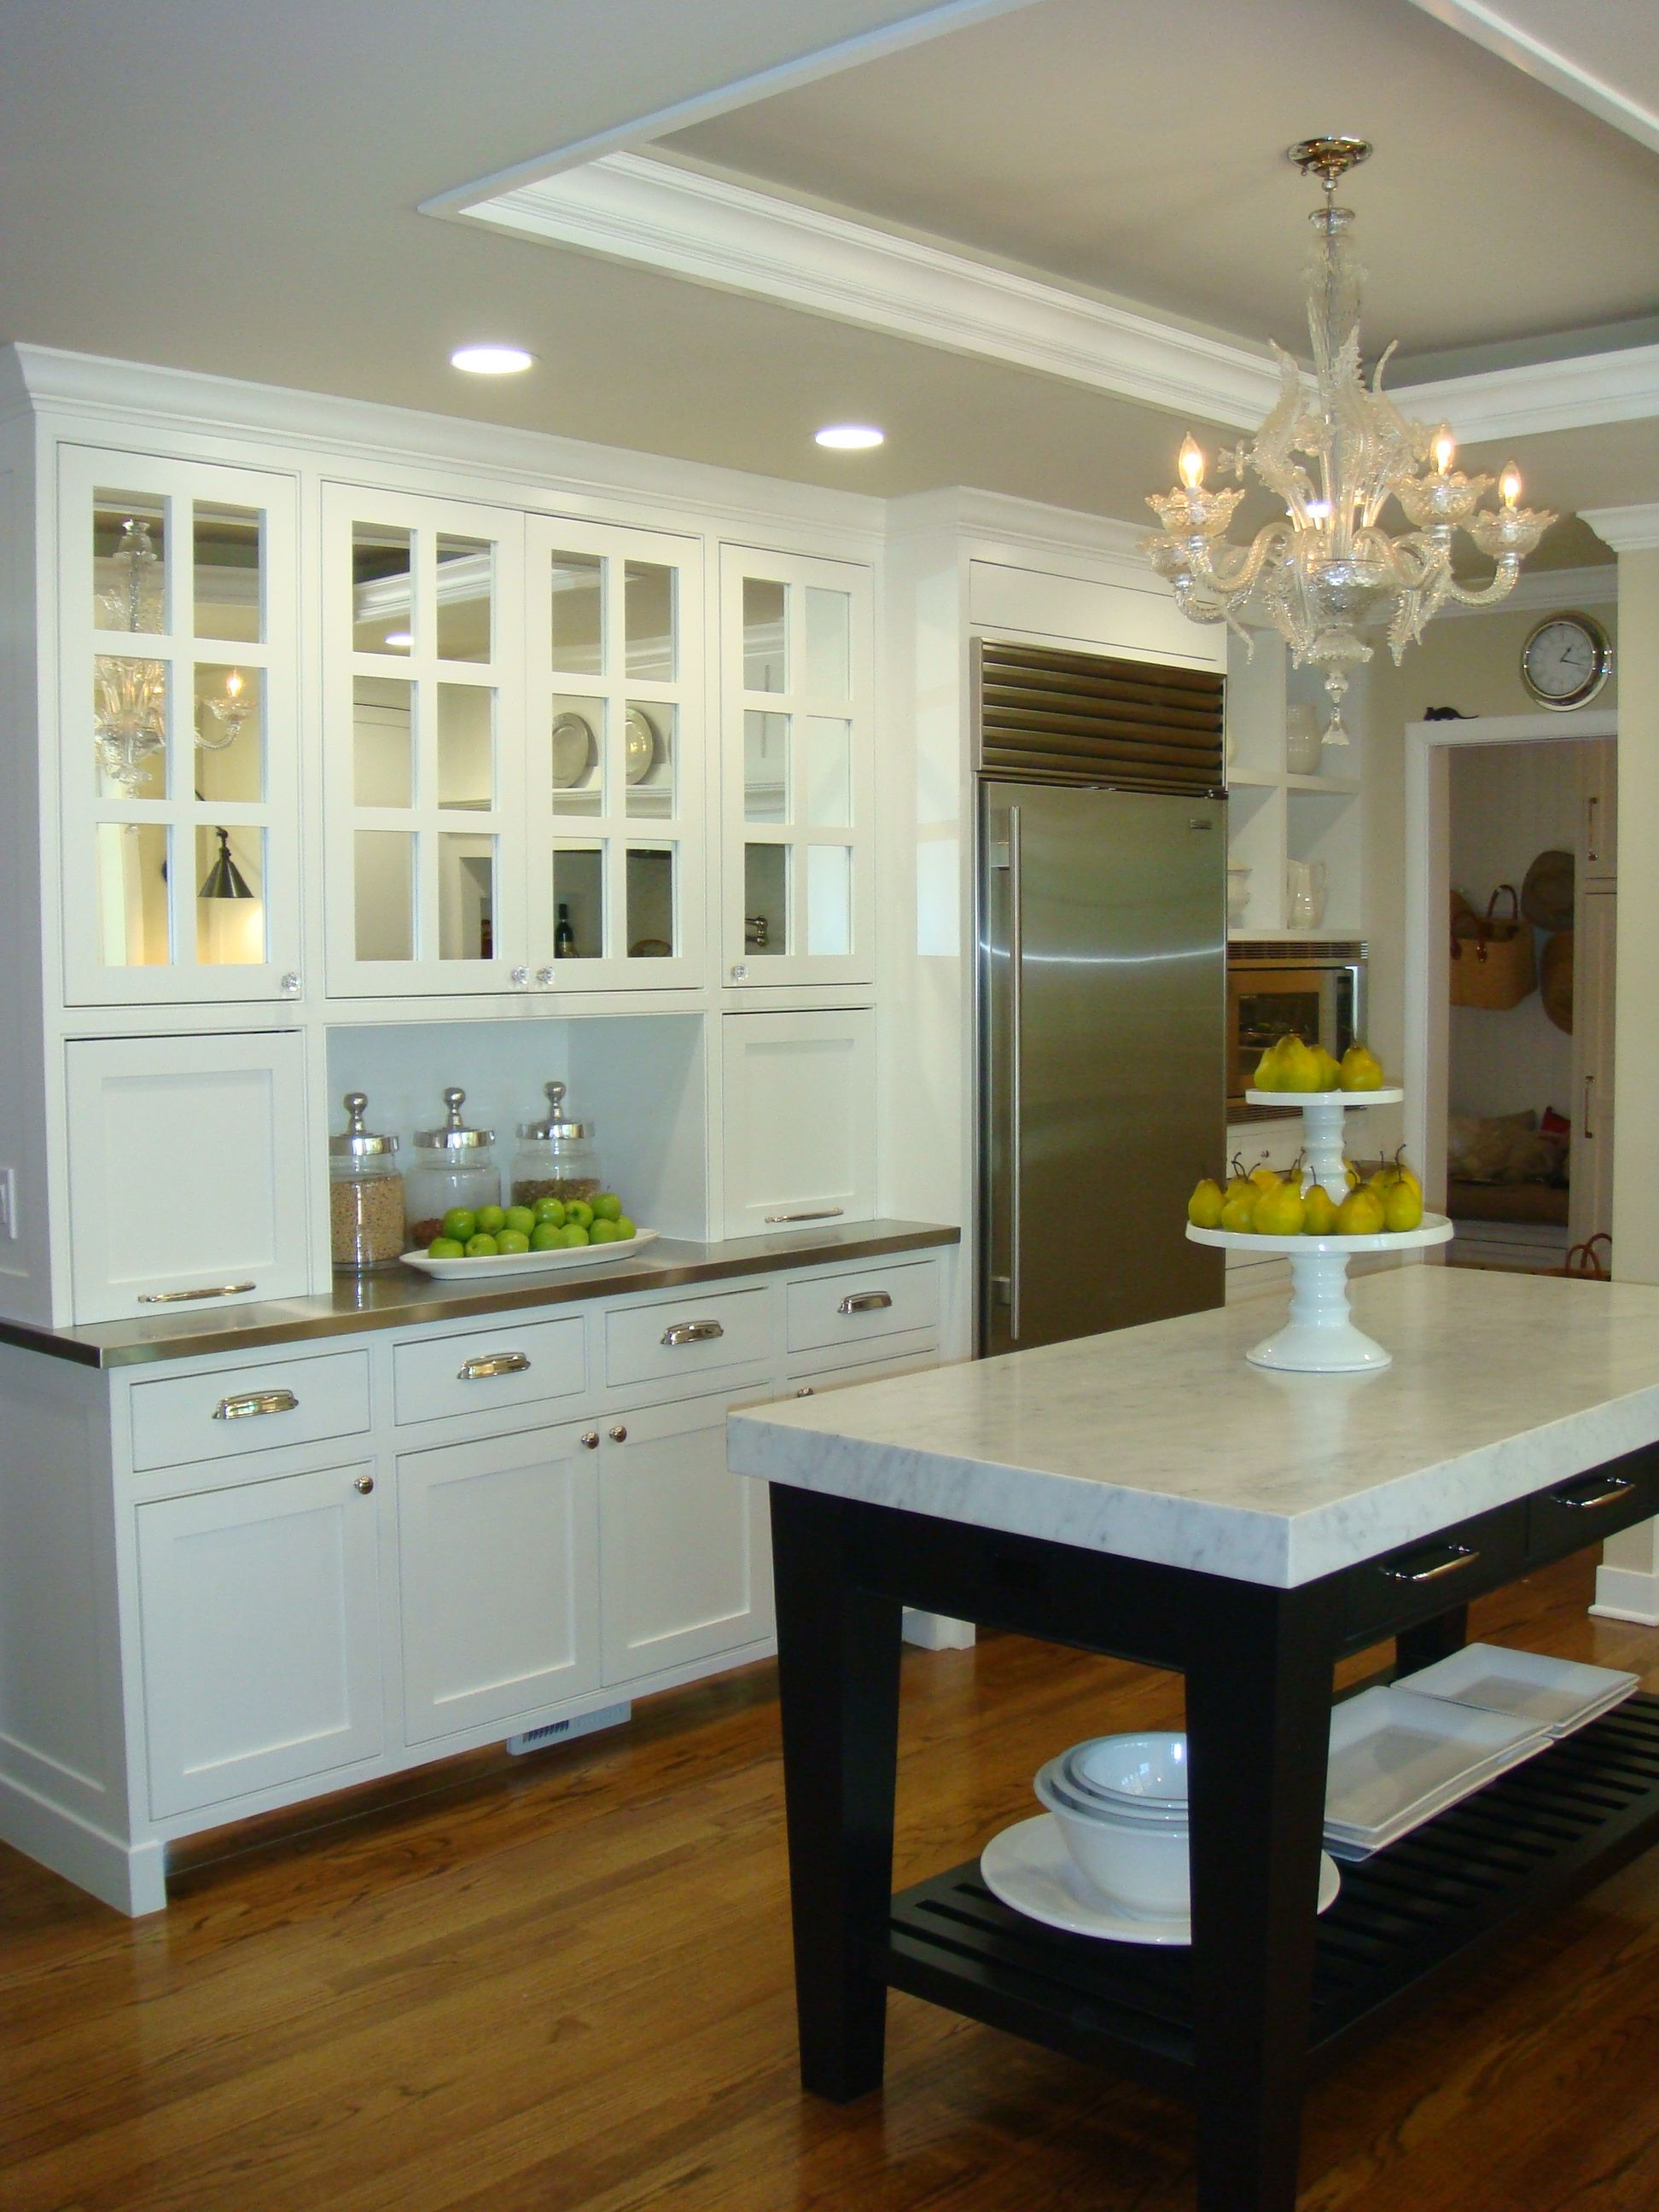 Tray ceiling carry wall color up to ceiling w bright white crown